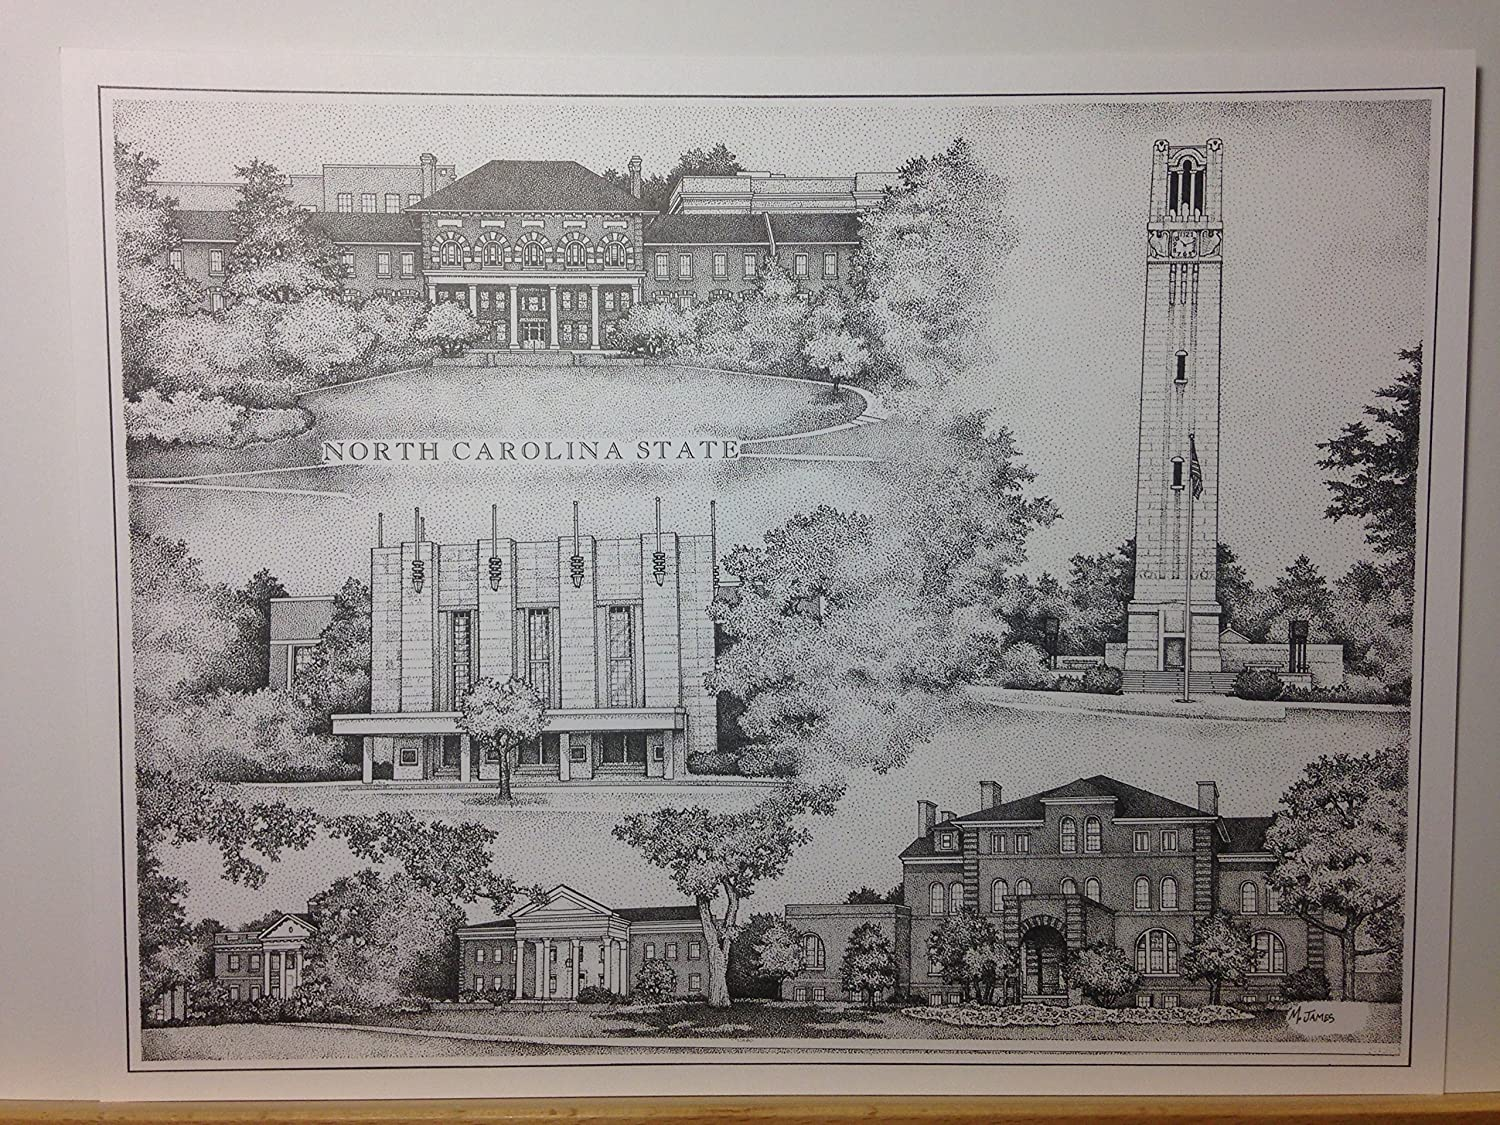 North Carolina State pen and ink collage print